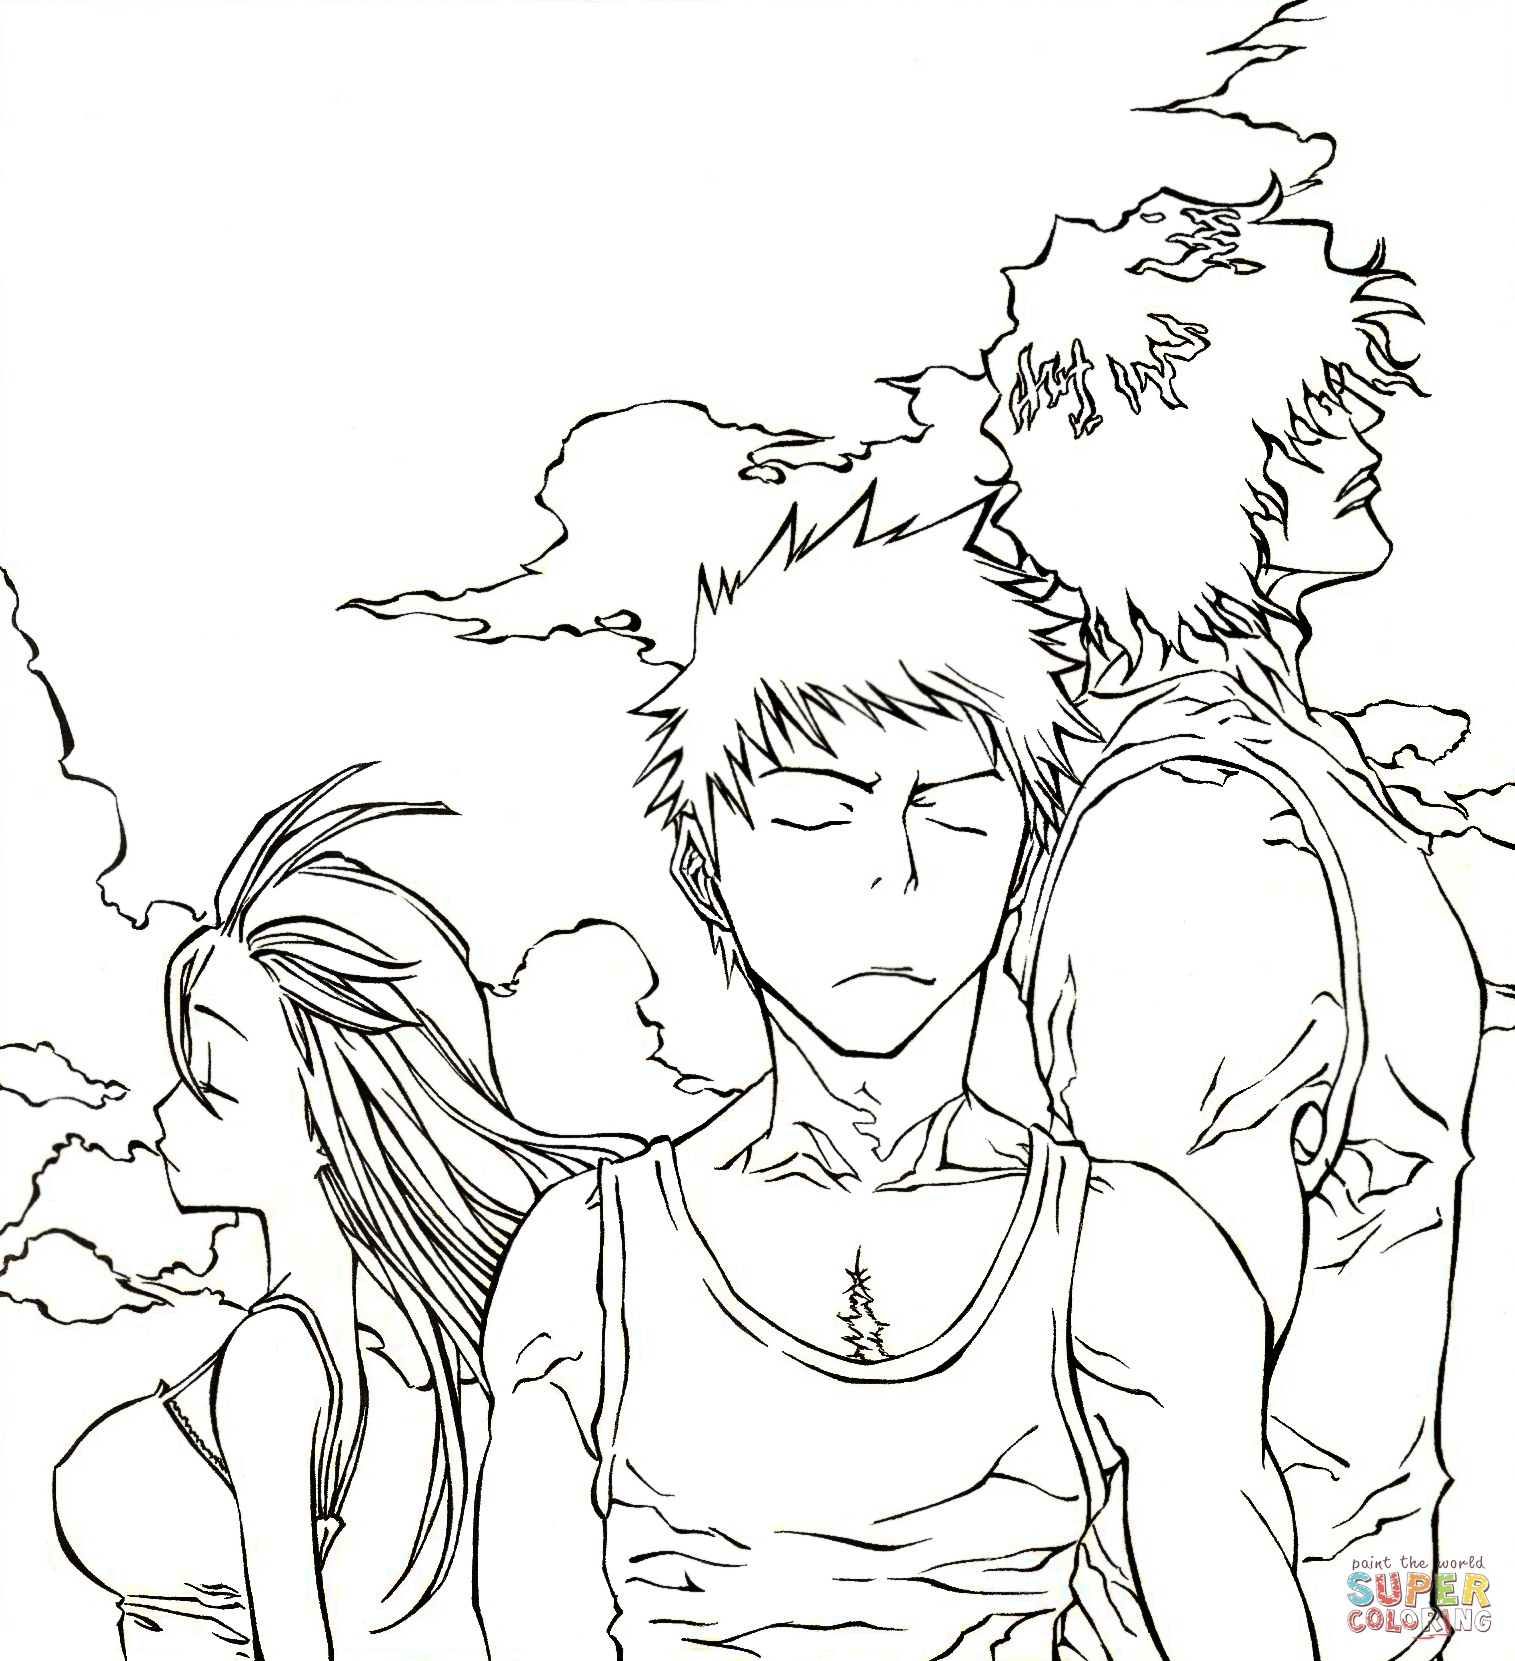 Bleach the team coloring page